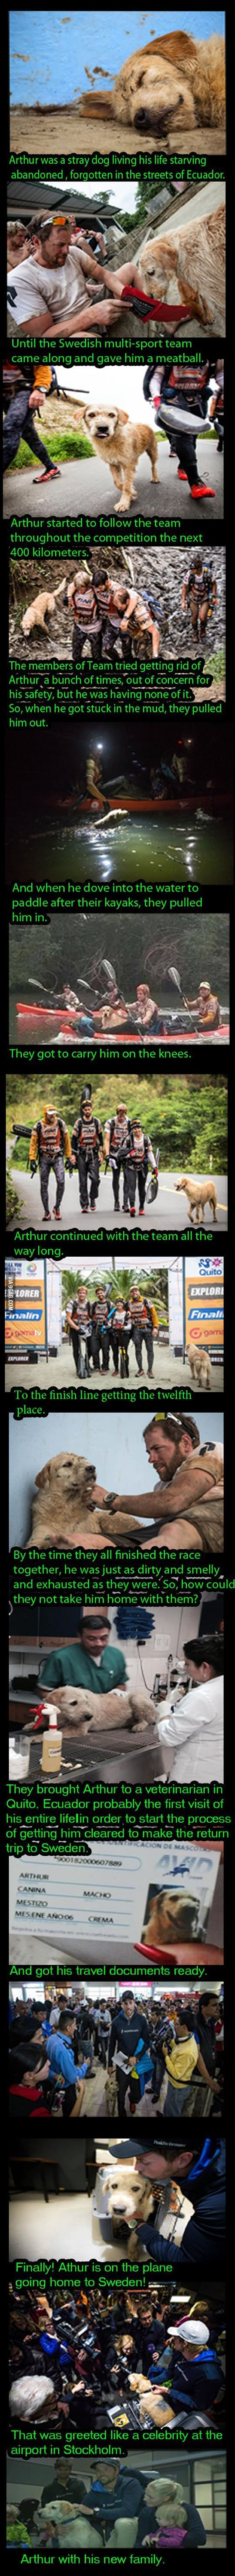 Arthur's amazing journey from slums to stardom ...For more funny dogs visit www.bestfunnyjokes4u.com/: